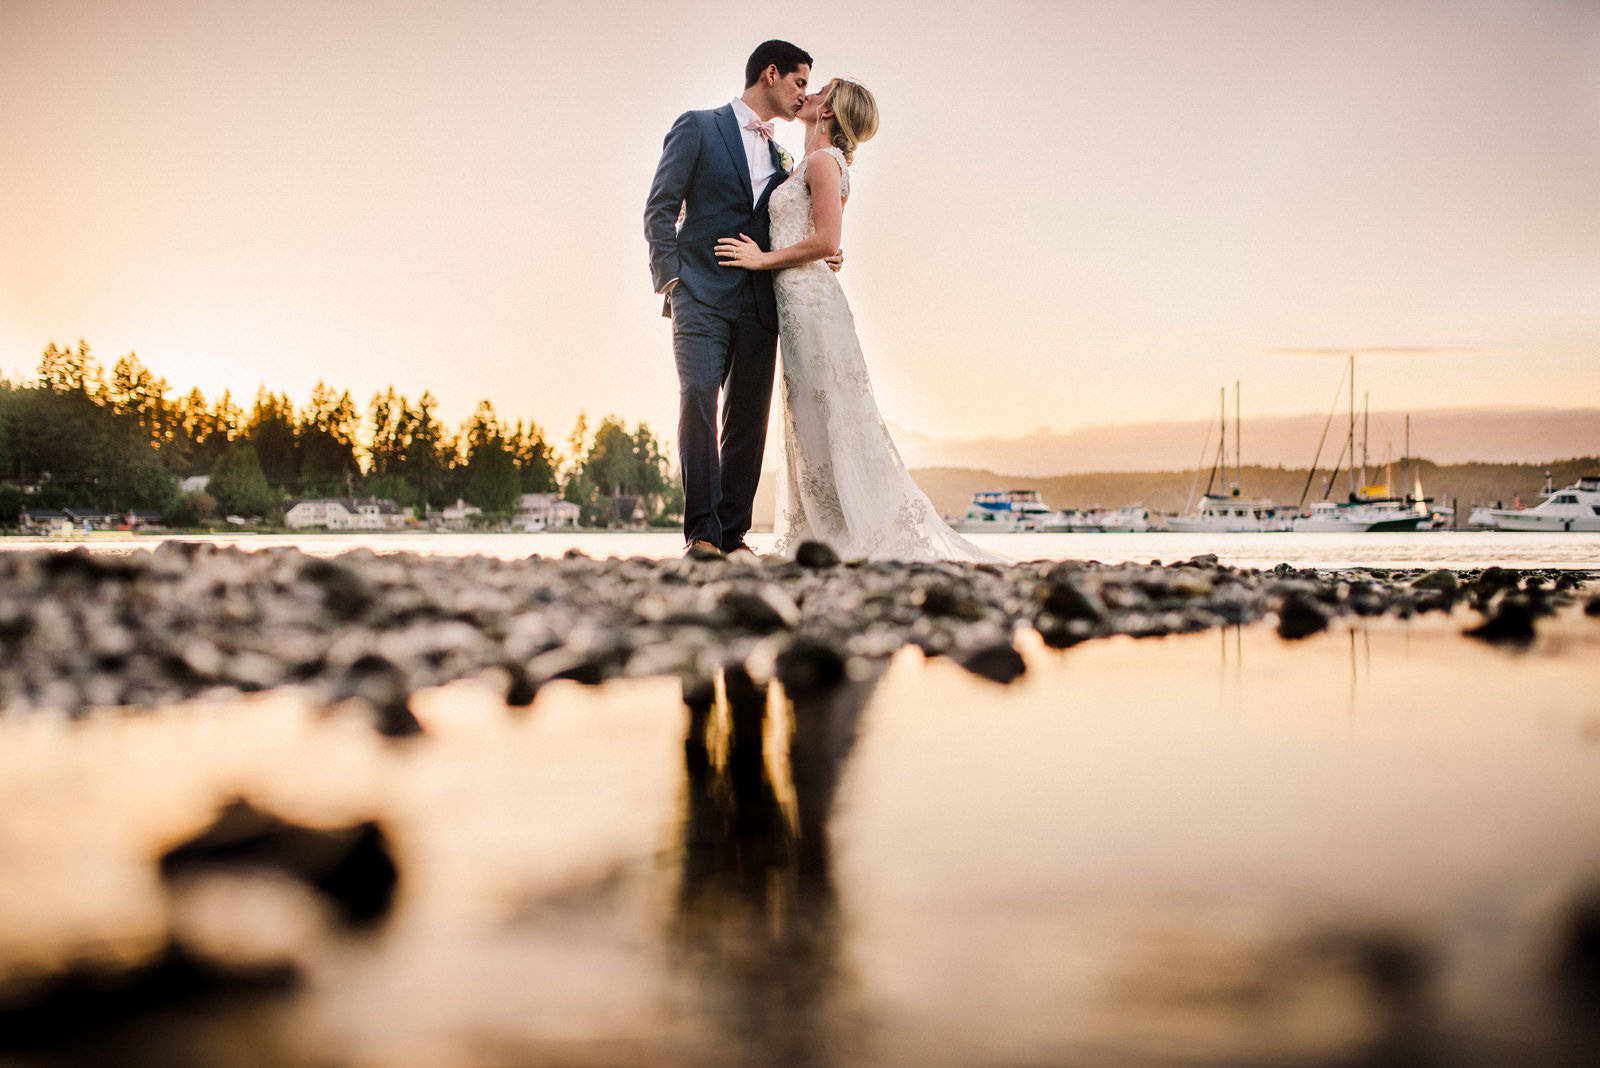 124-alderbrook-resort-sunset-wedding-portrait-by-washington-fine-art-photographer.jpg